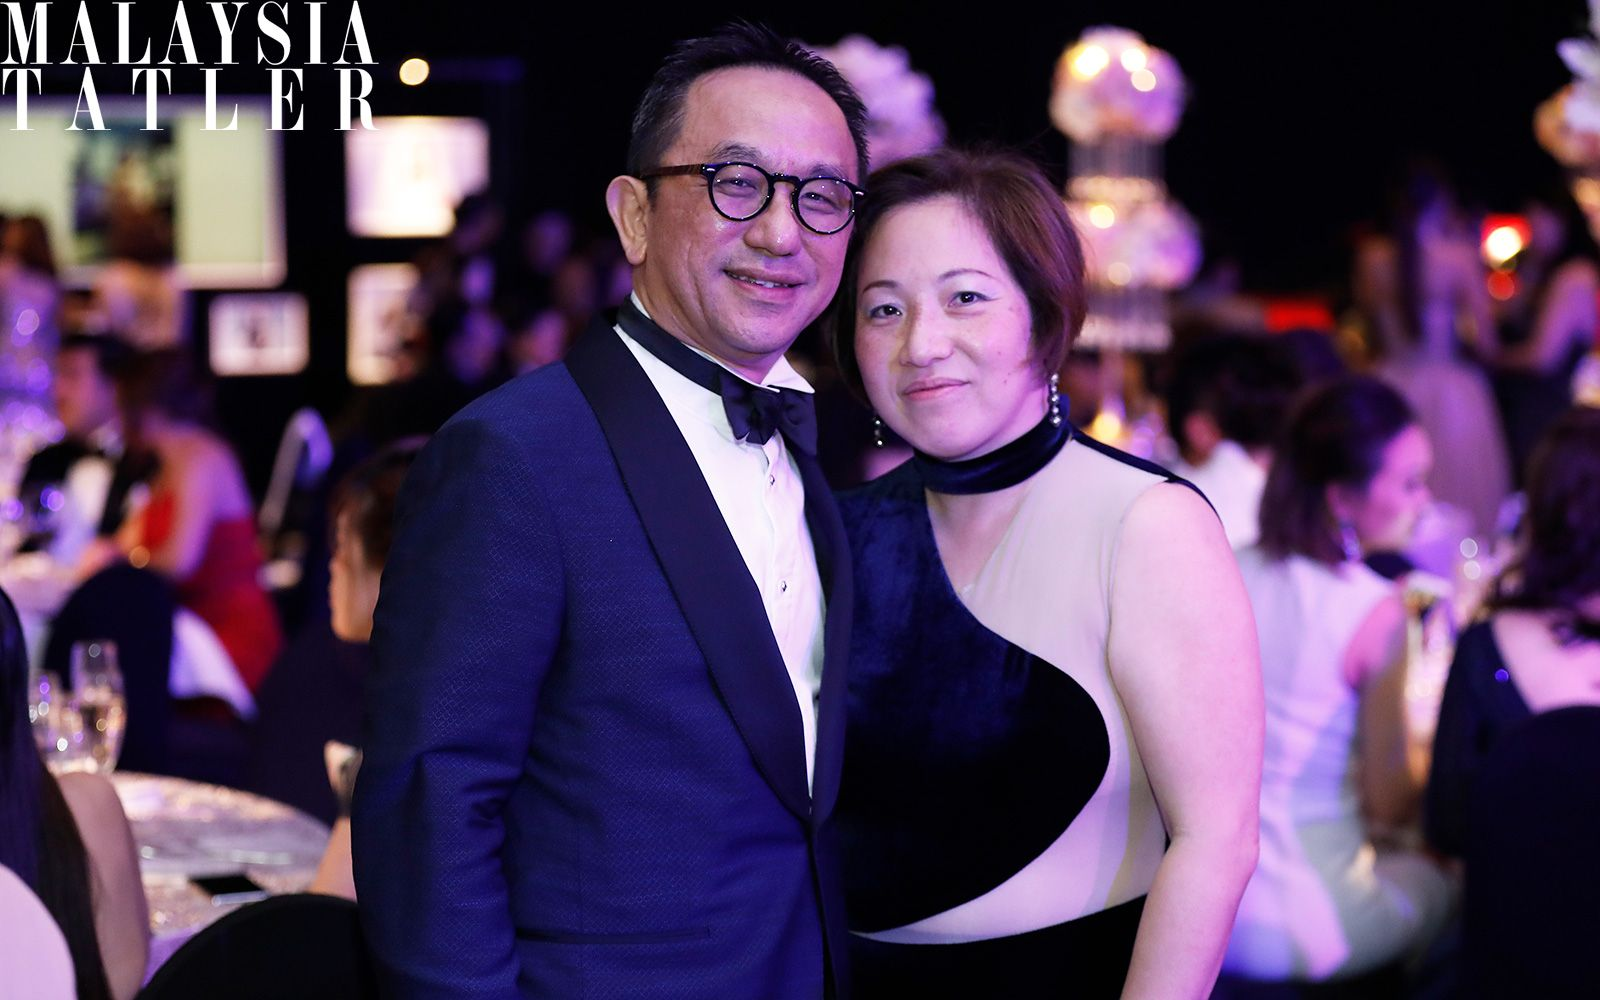 Dato' Lai Voon Hon and Datin Lisa Lai